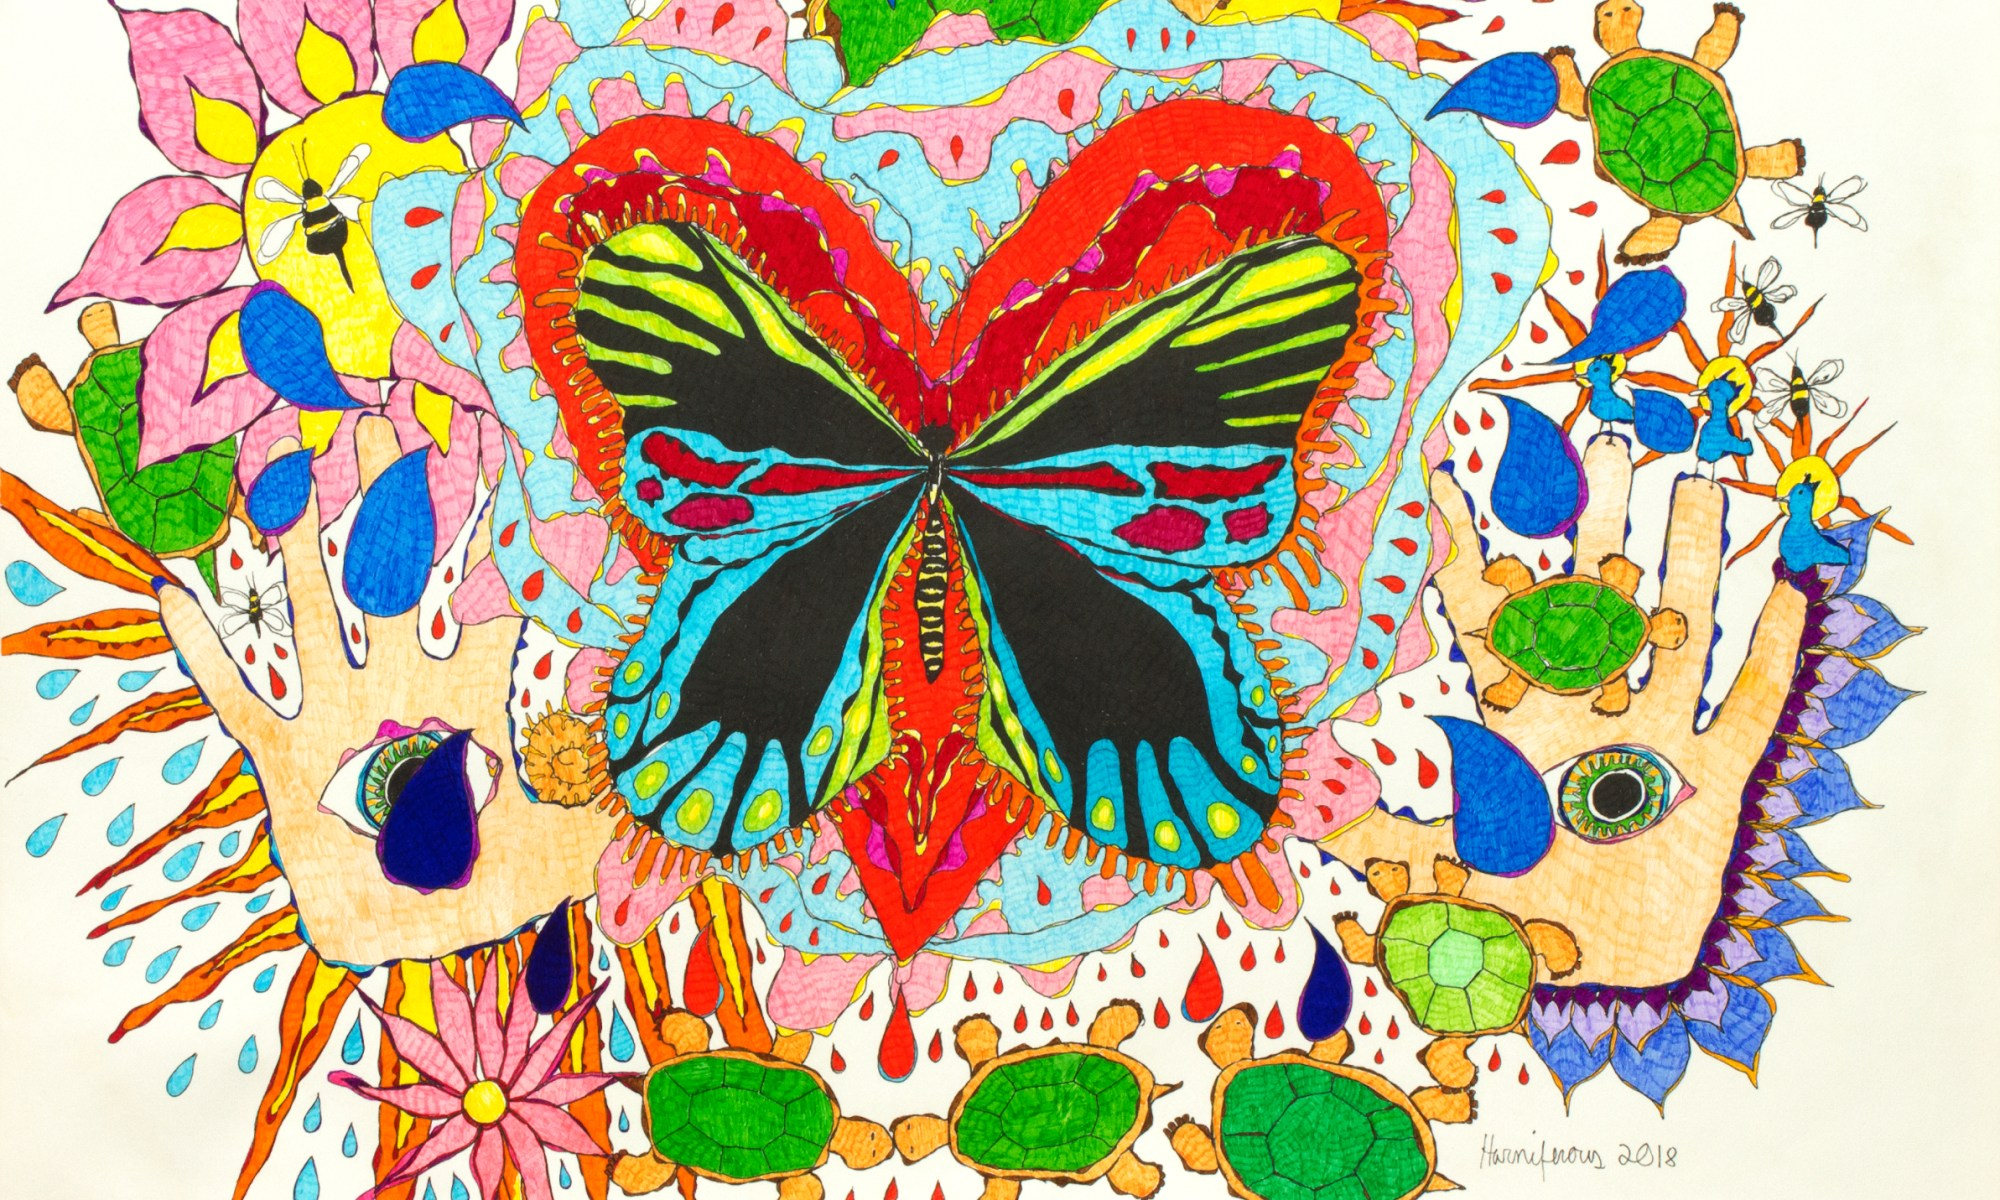 Meditative/contemplative drawing of butterfly, heart, healing hands, turtles, flowers